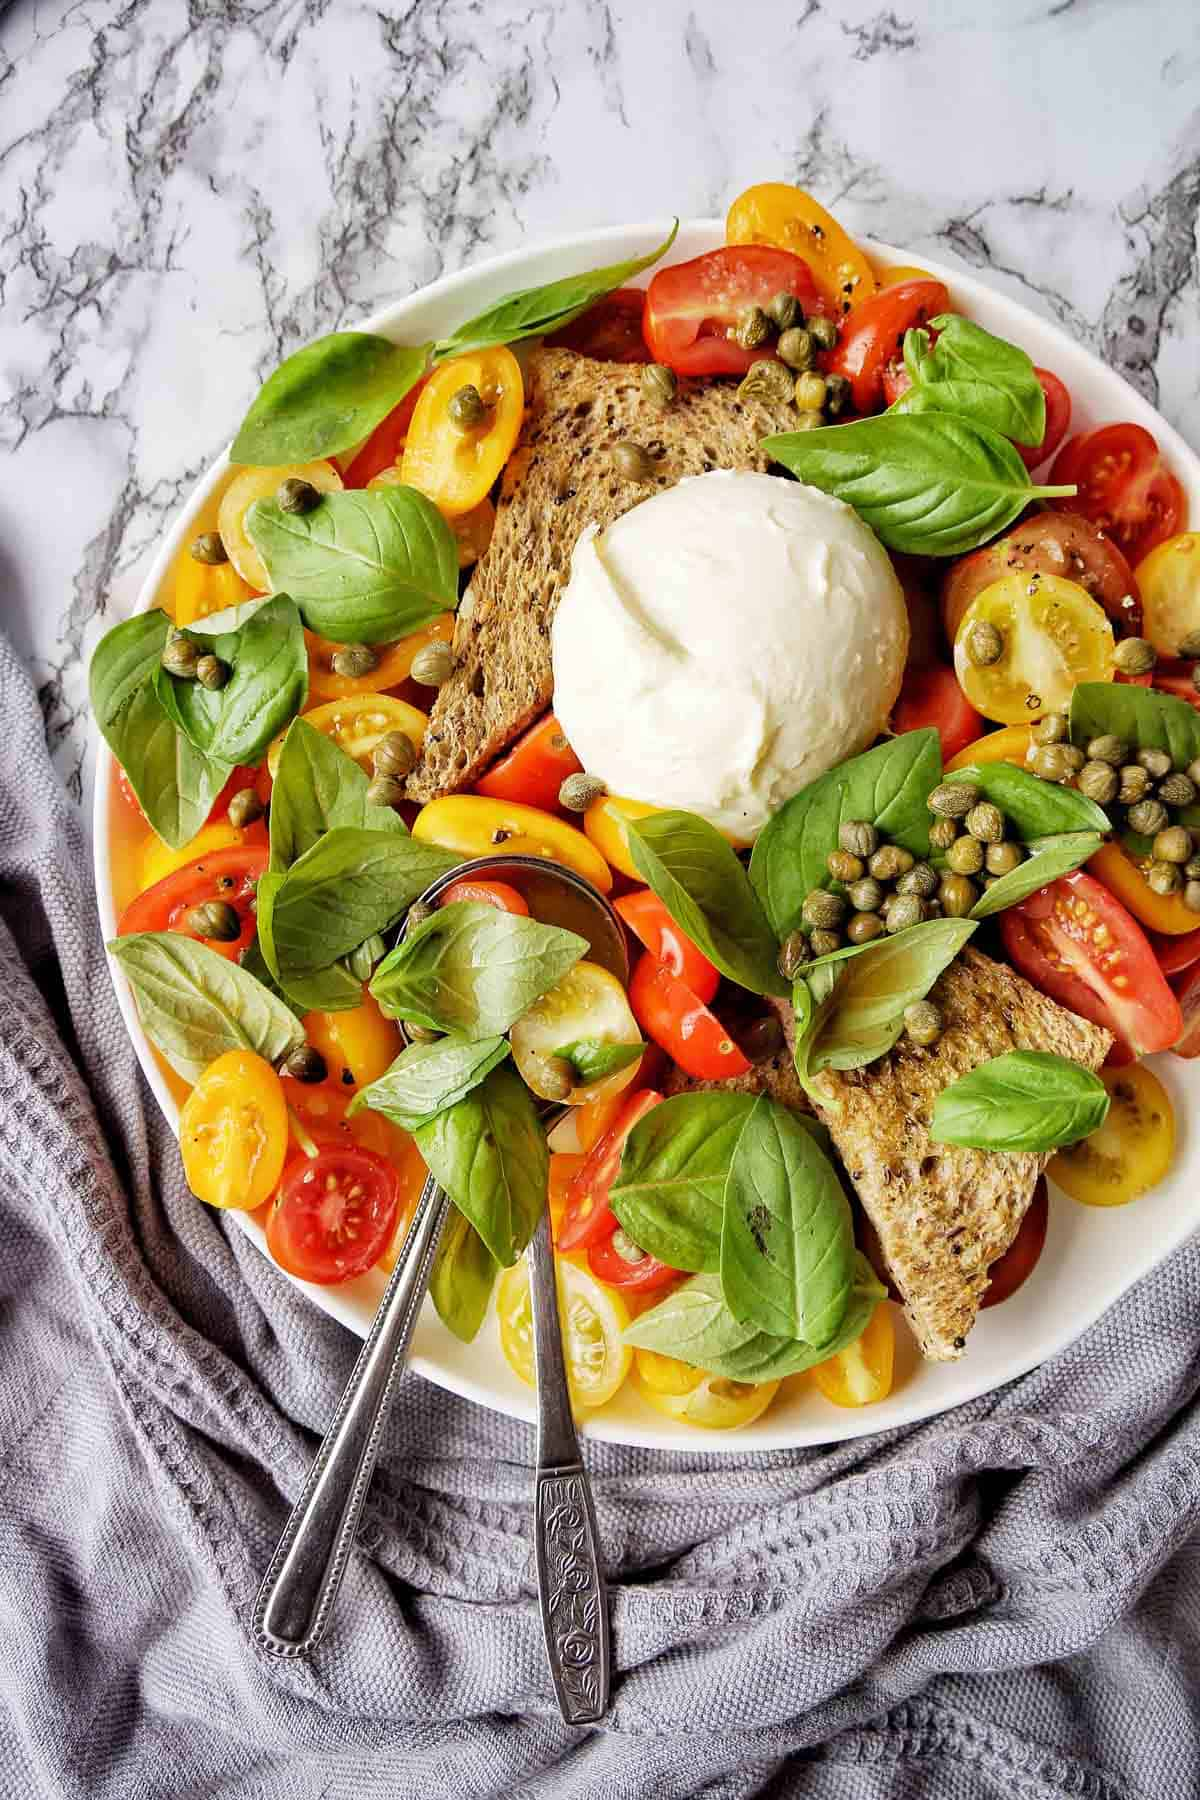 Burrata Salad with wholemeal toast points on white plate